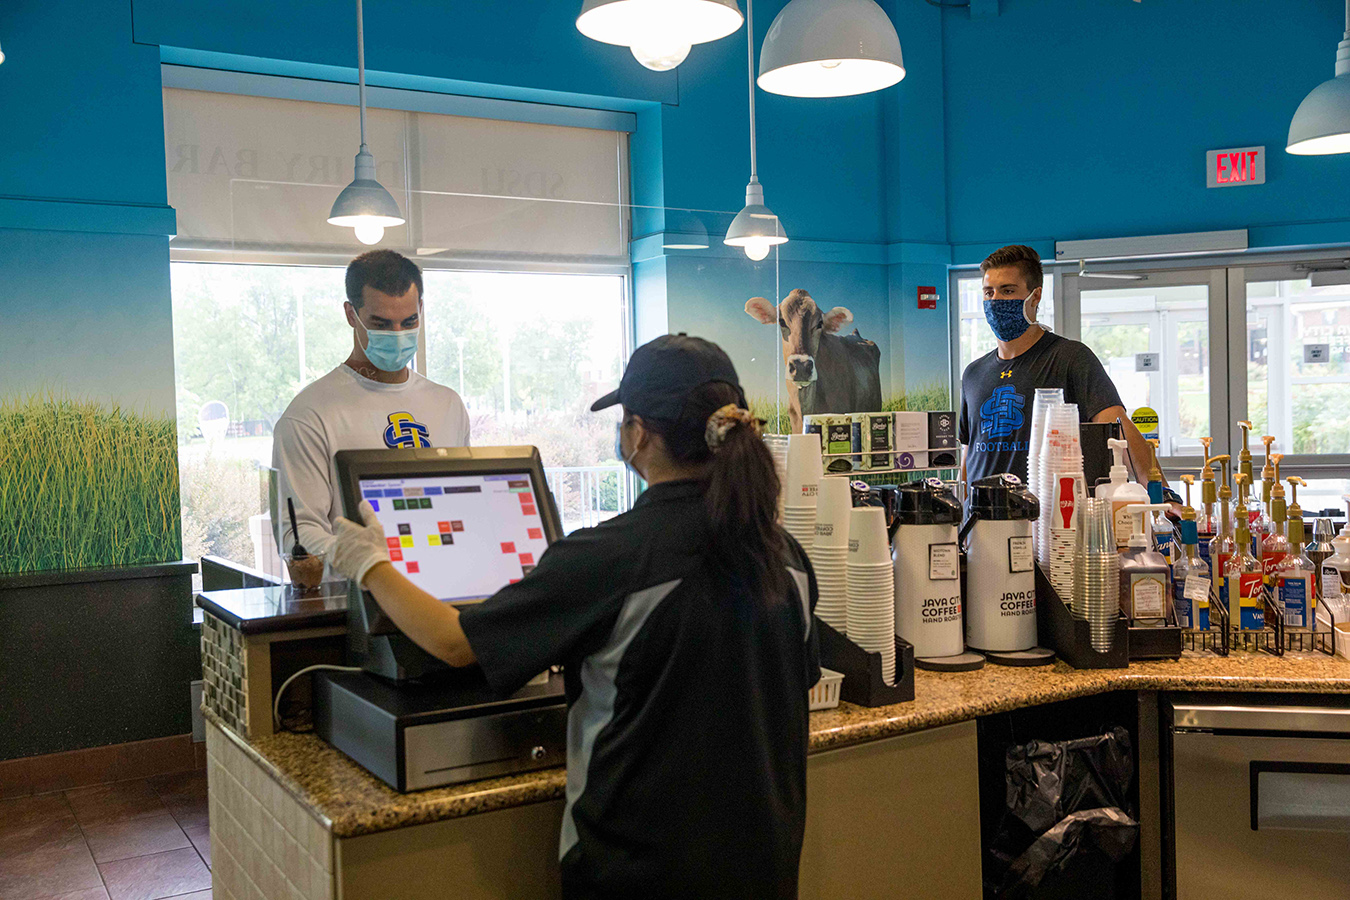 Students wearing face masks while visiting the Dairy Bar